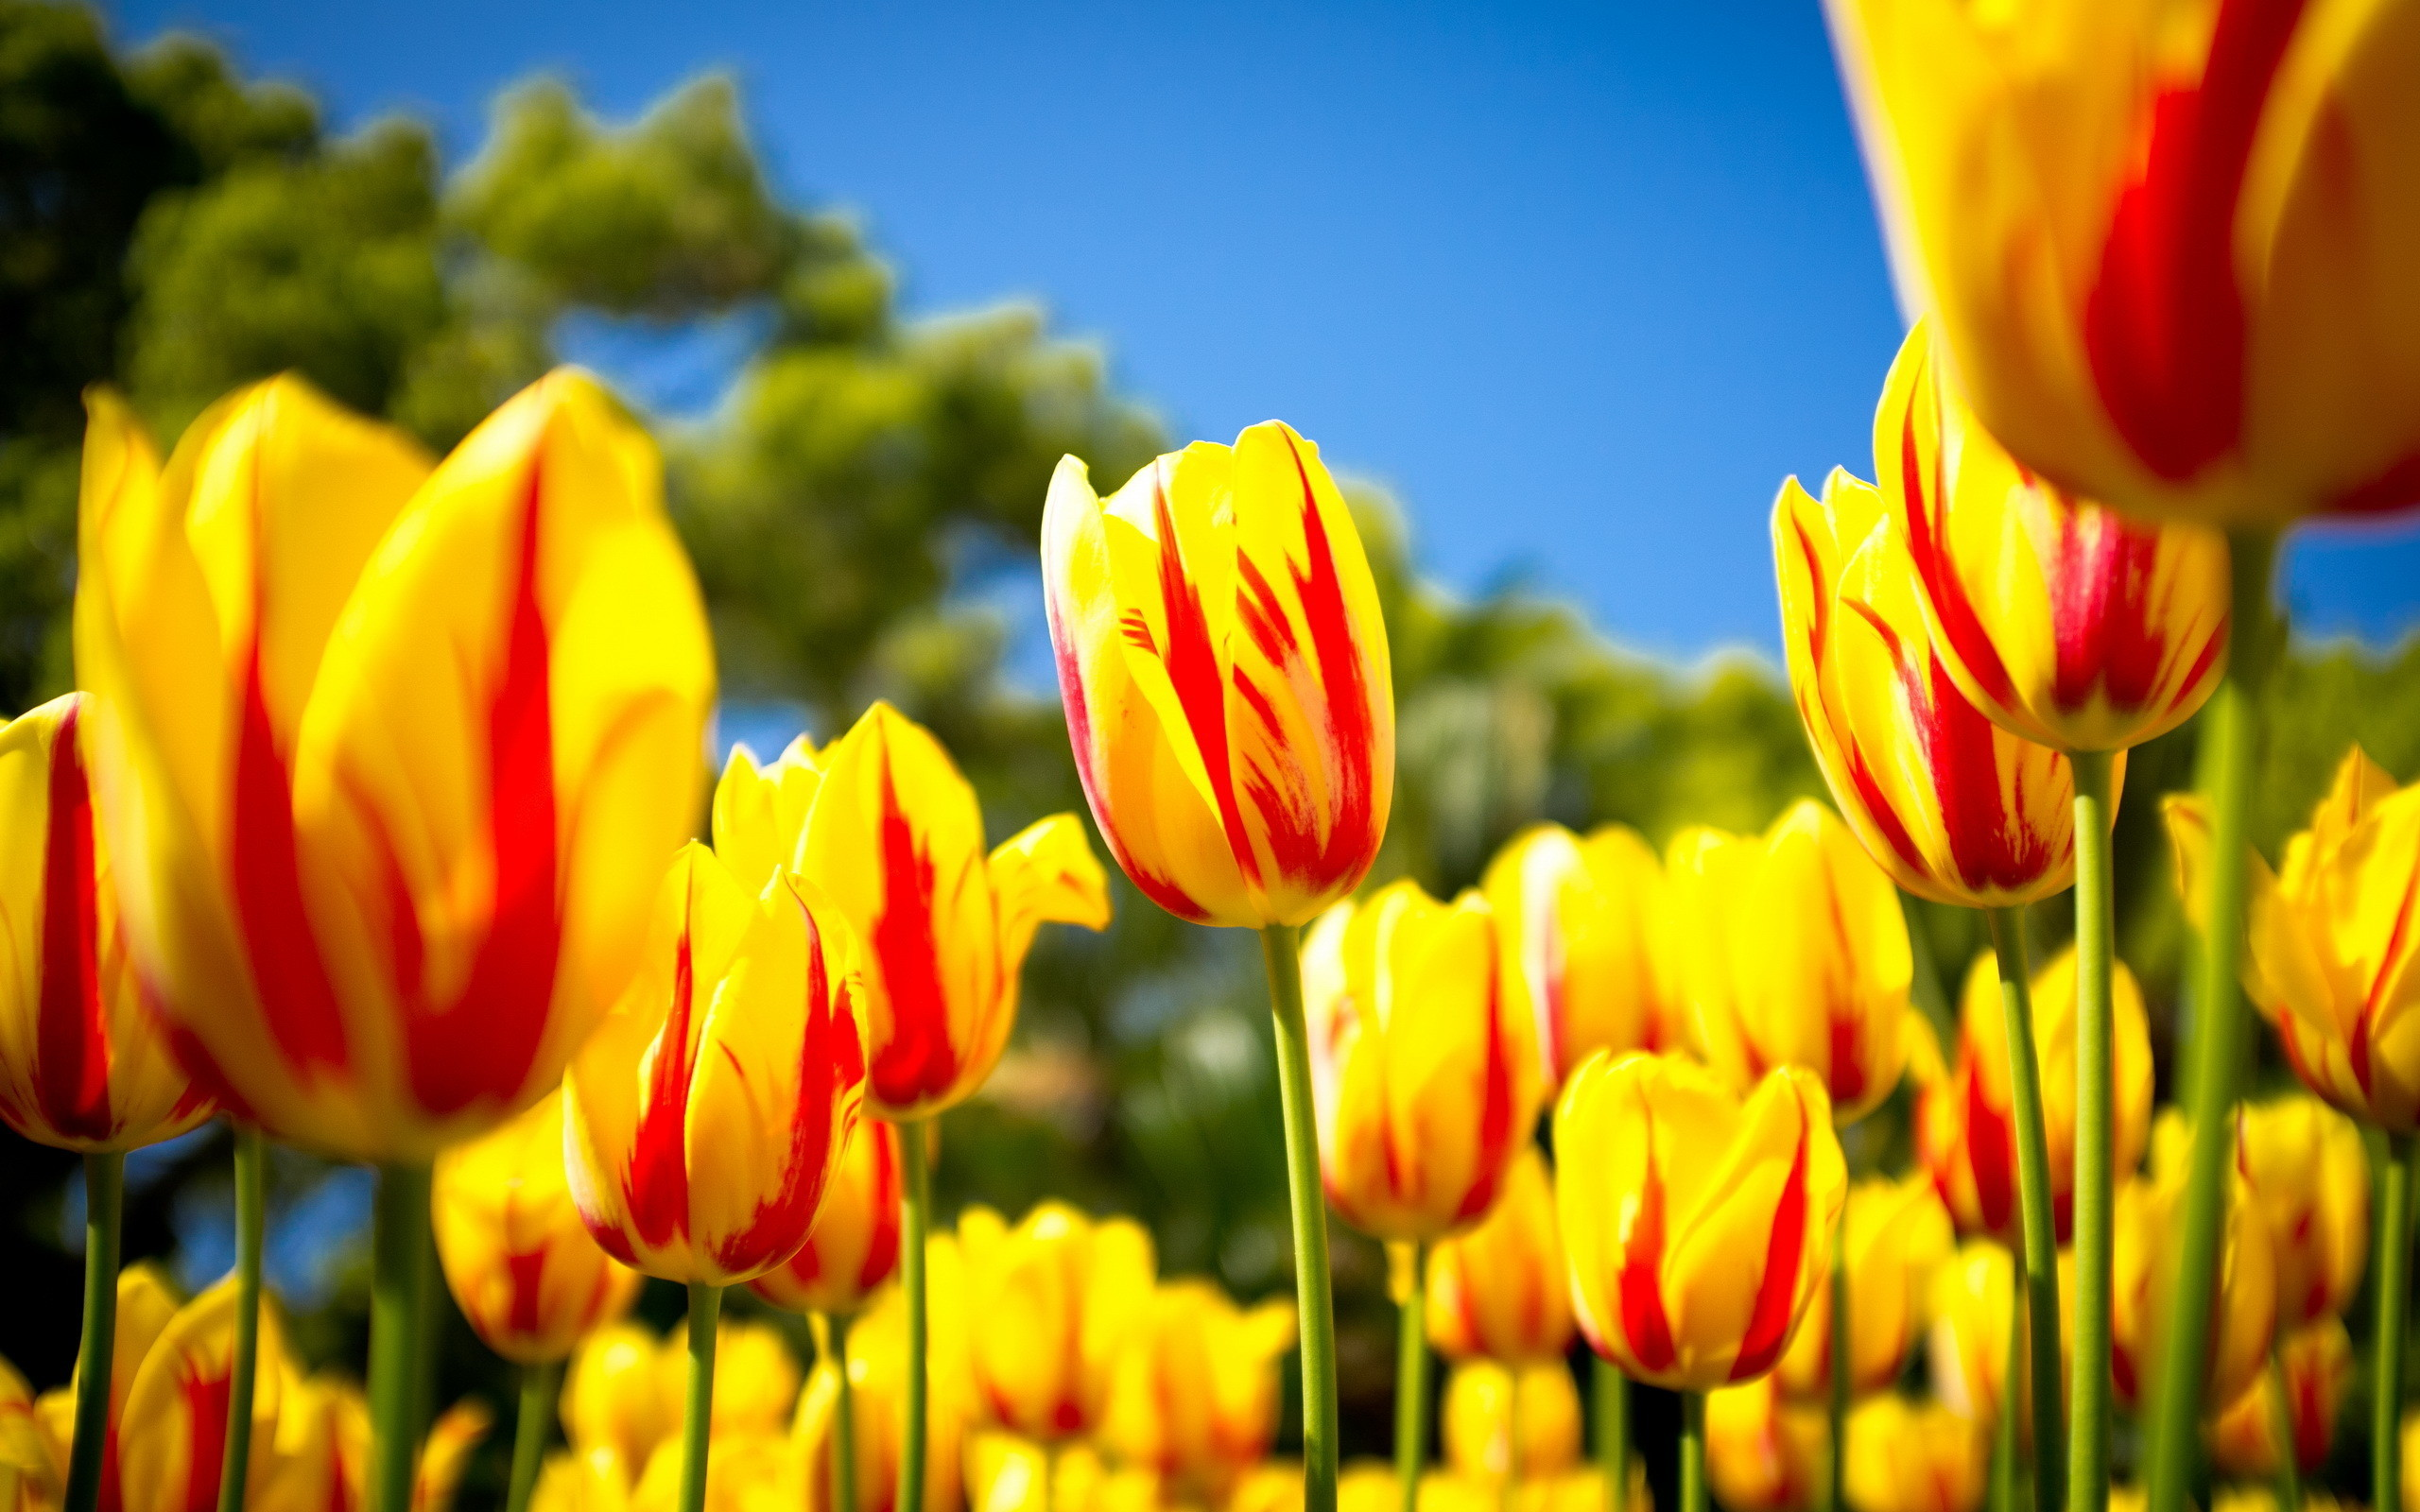 2560x1600 Nature HD Wallpaper with Yellow Tulips in Spring - HD Wallpapers for Free